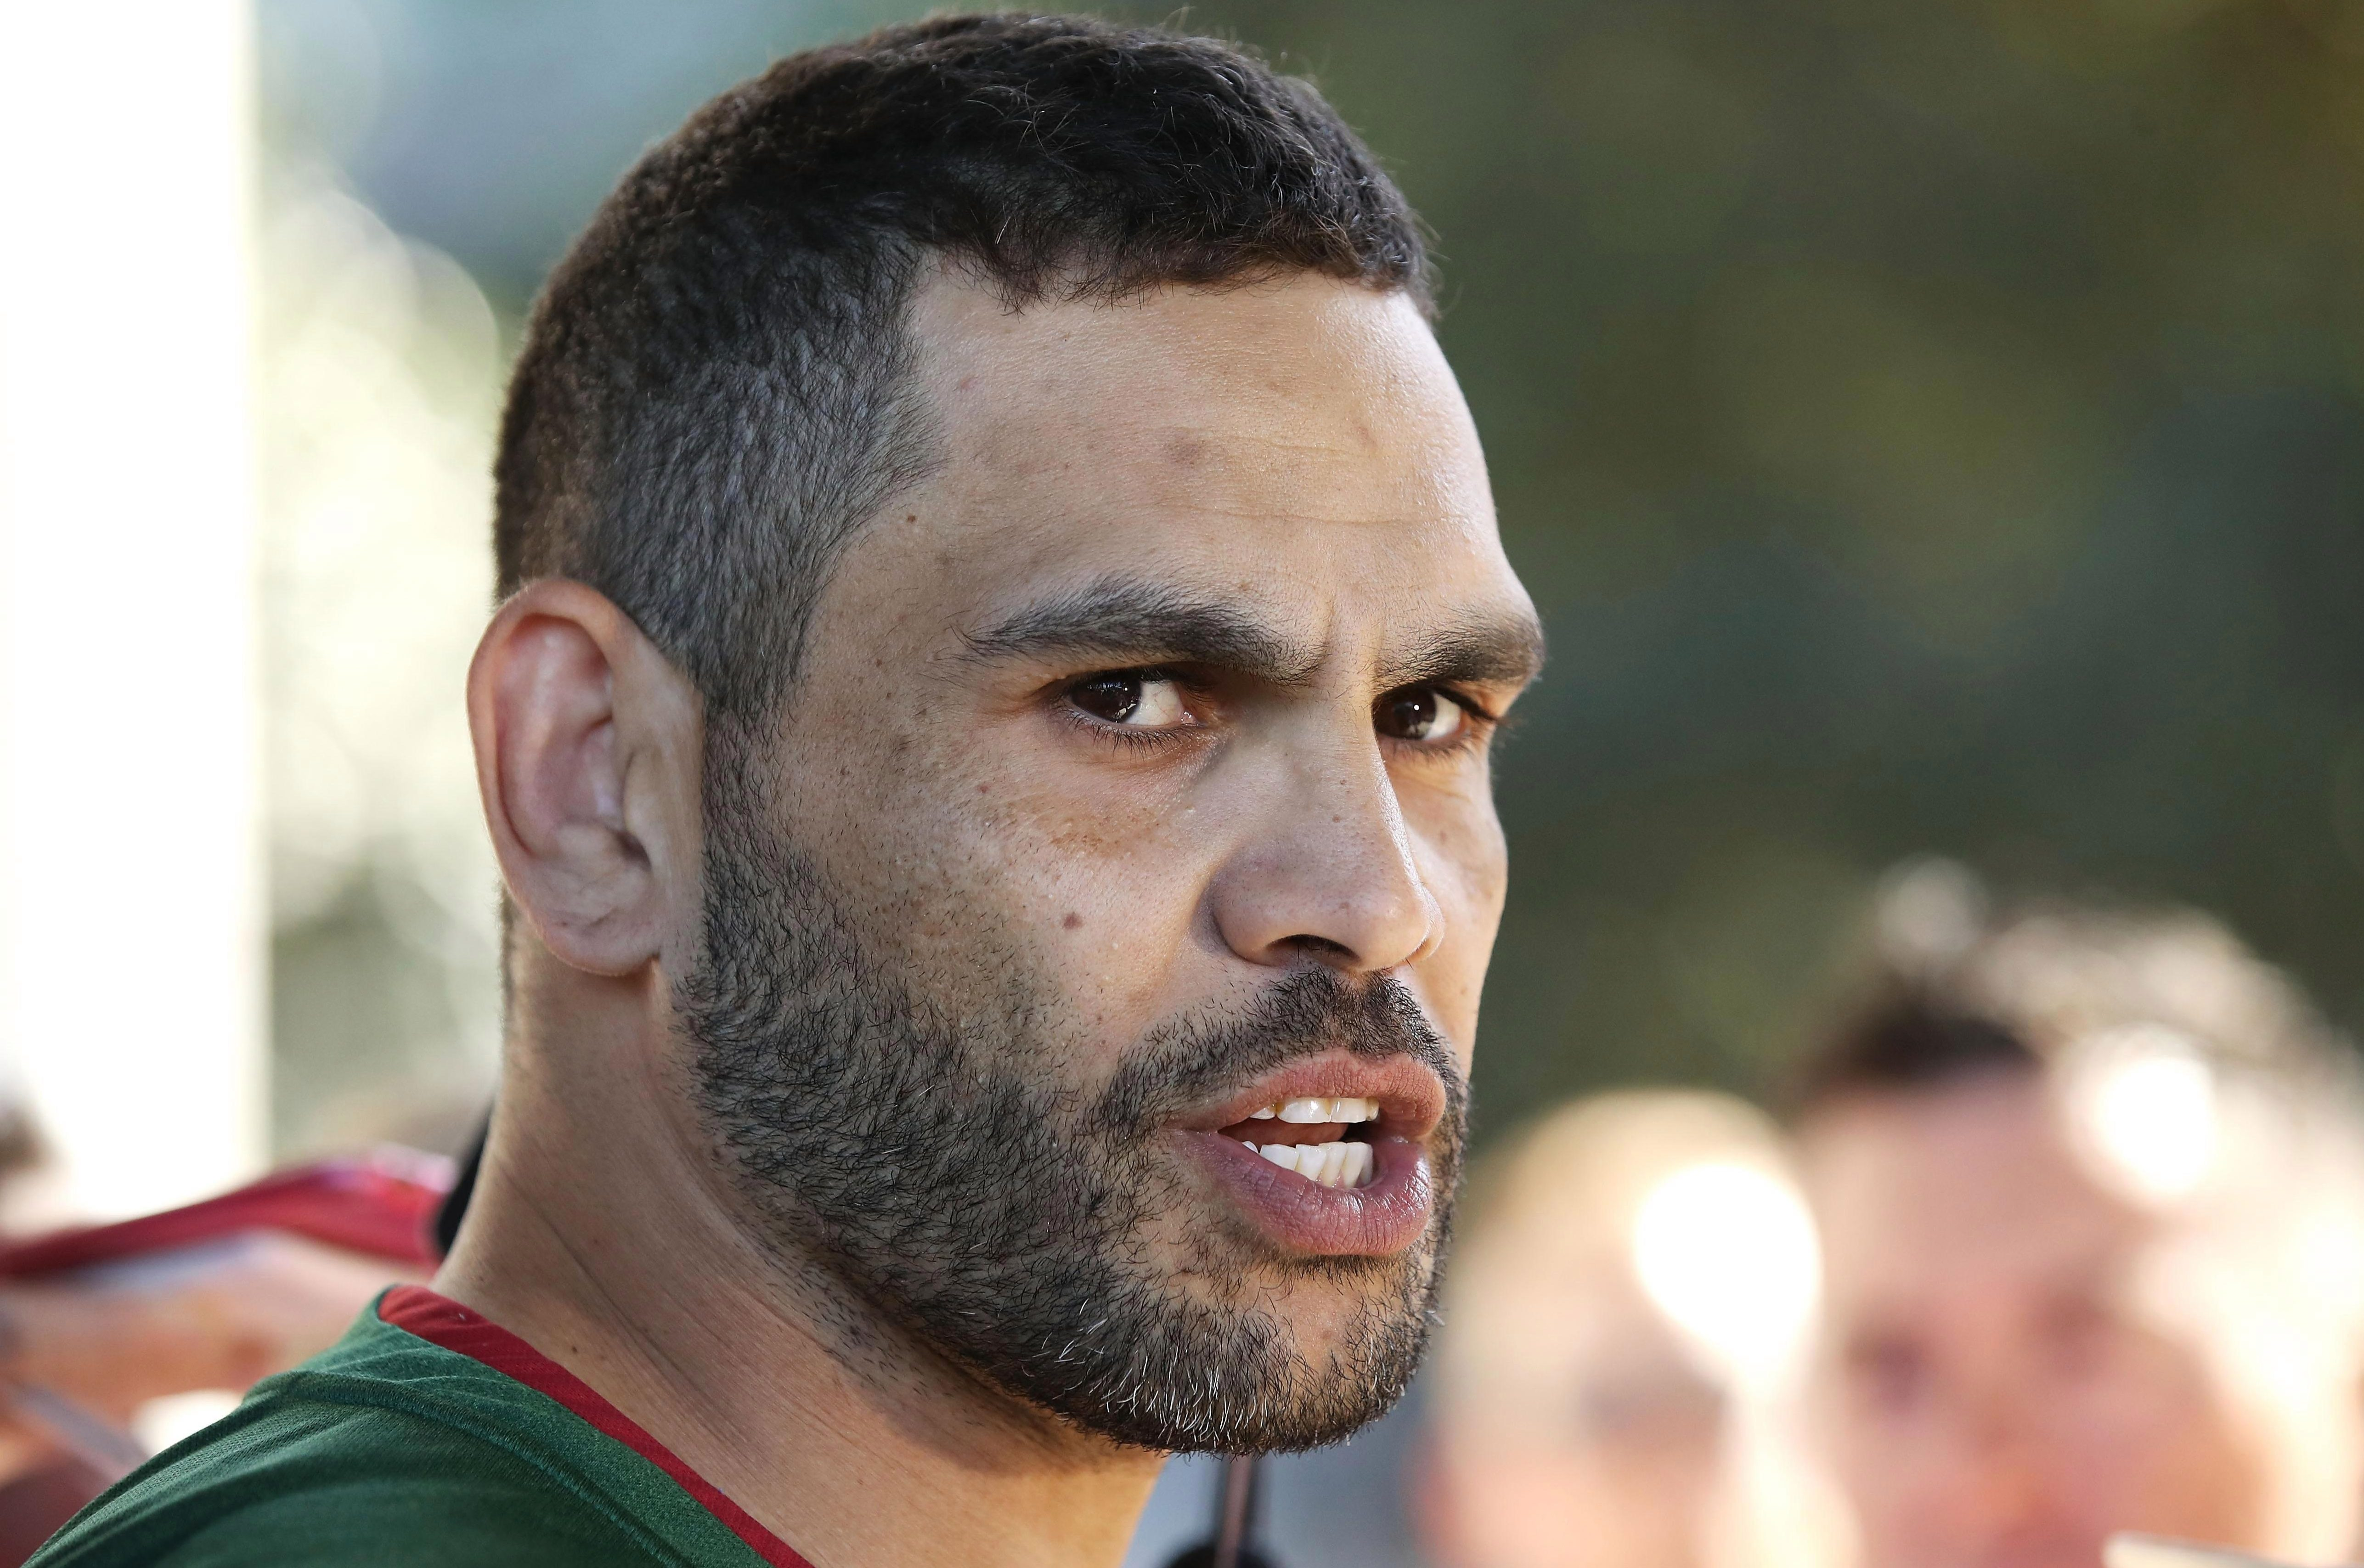 Greg Inglis' licence has been suspended and he is due to appear in court on November 2